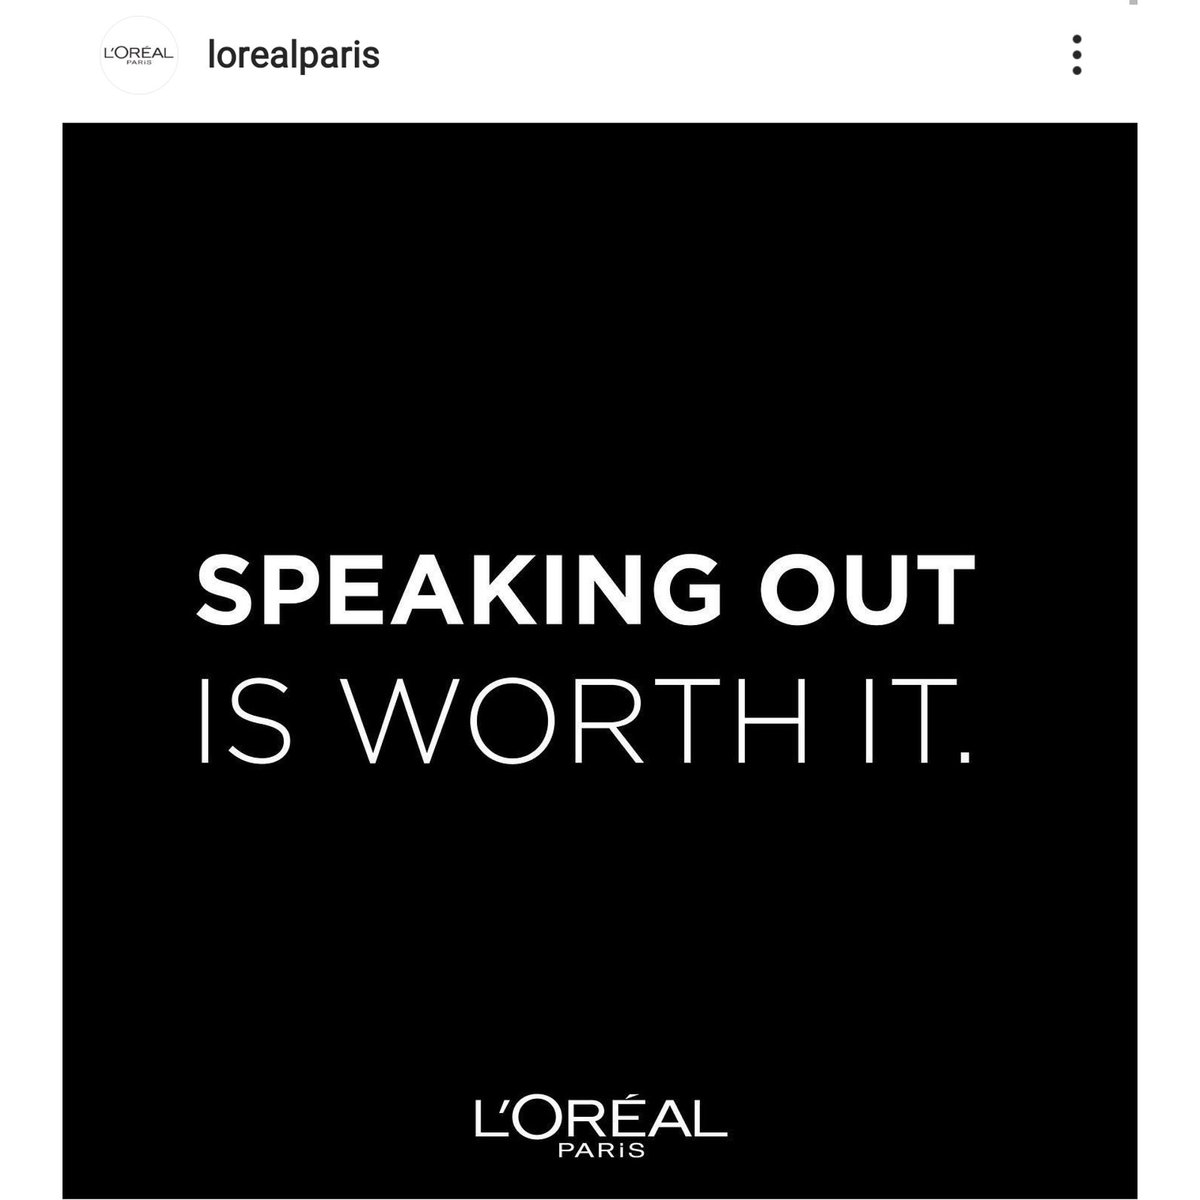 @Loreal seriously! PR stunt we know your history! #loreal #hairandbeauty #history   https://t.co/31kcQE0sbs https://t.co/eeVunC91n7